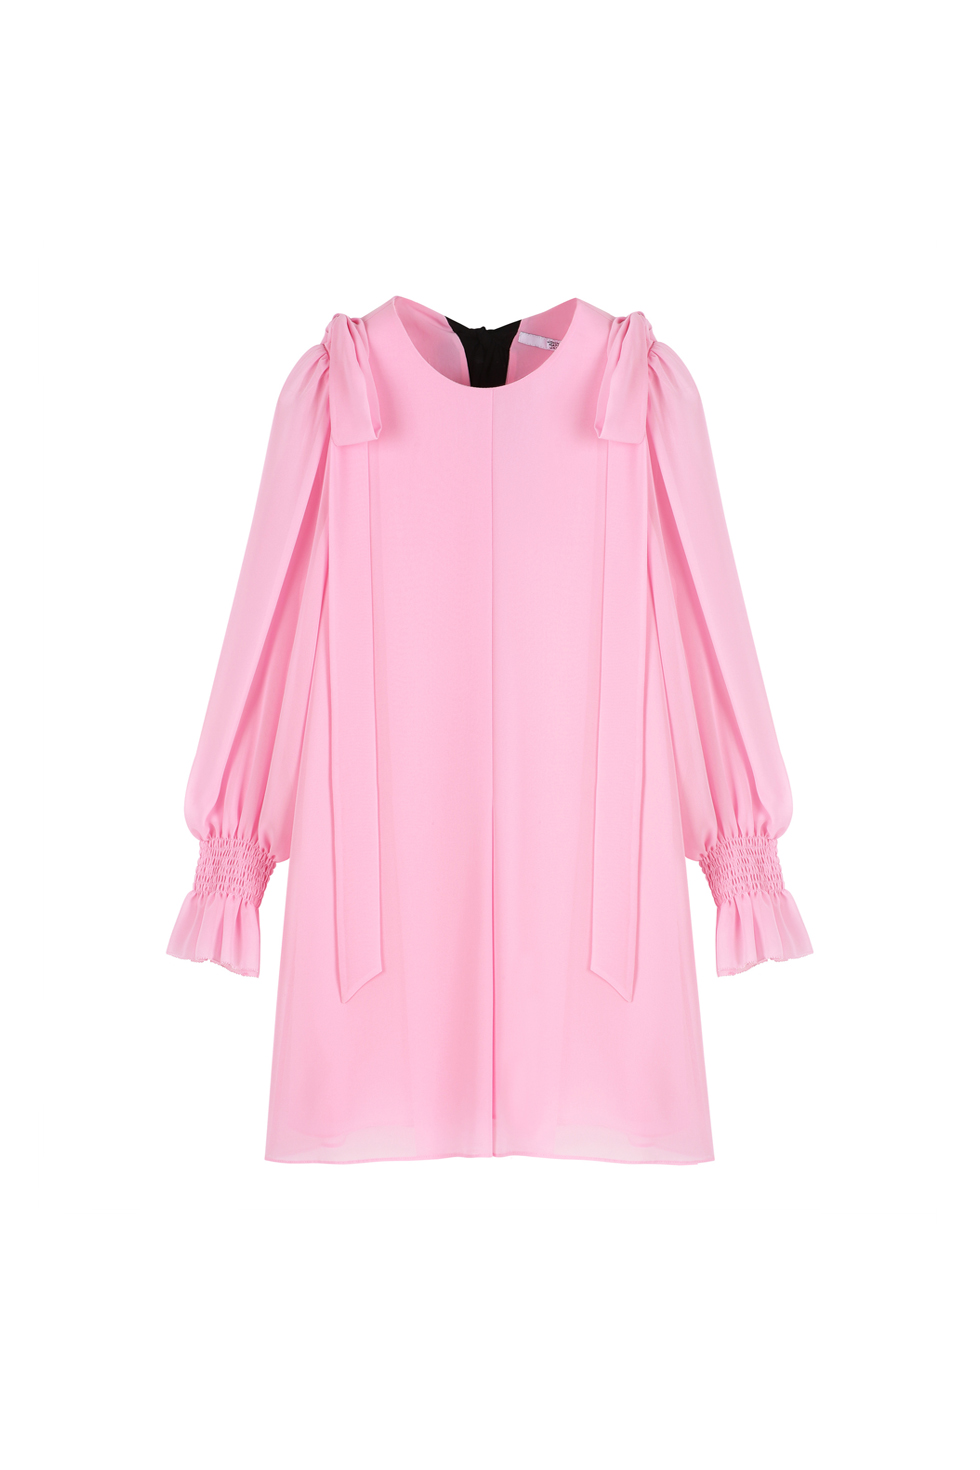 CHIFFON RIBBON DRESS - PINK